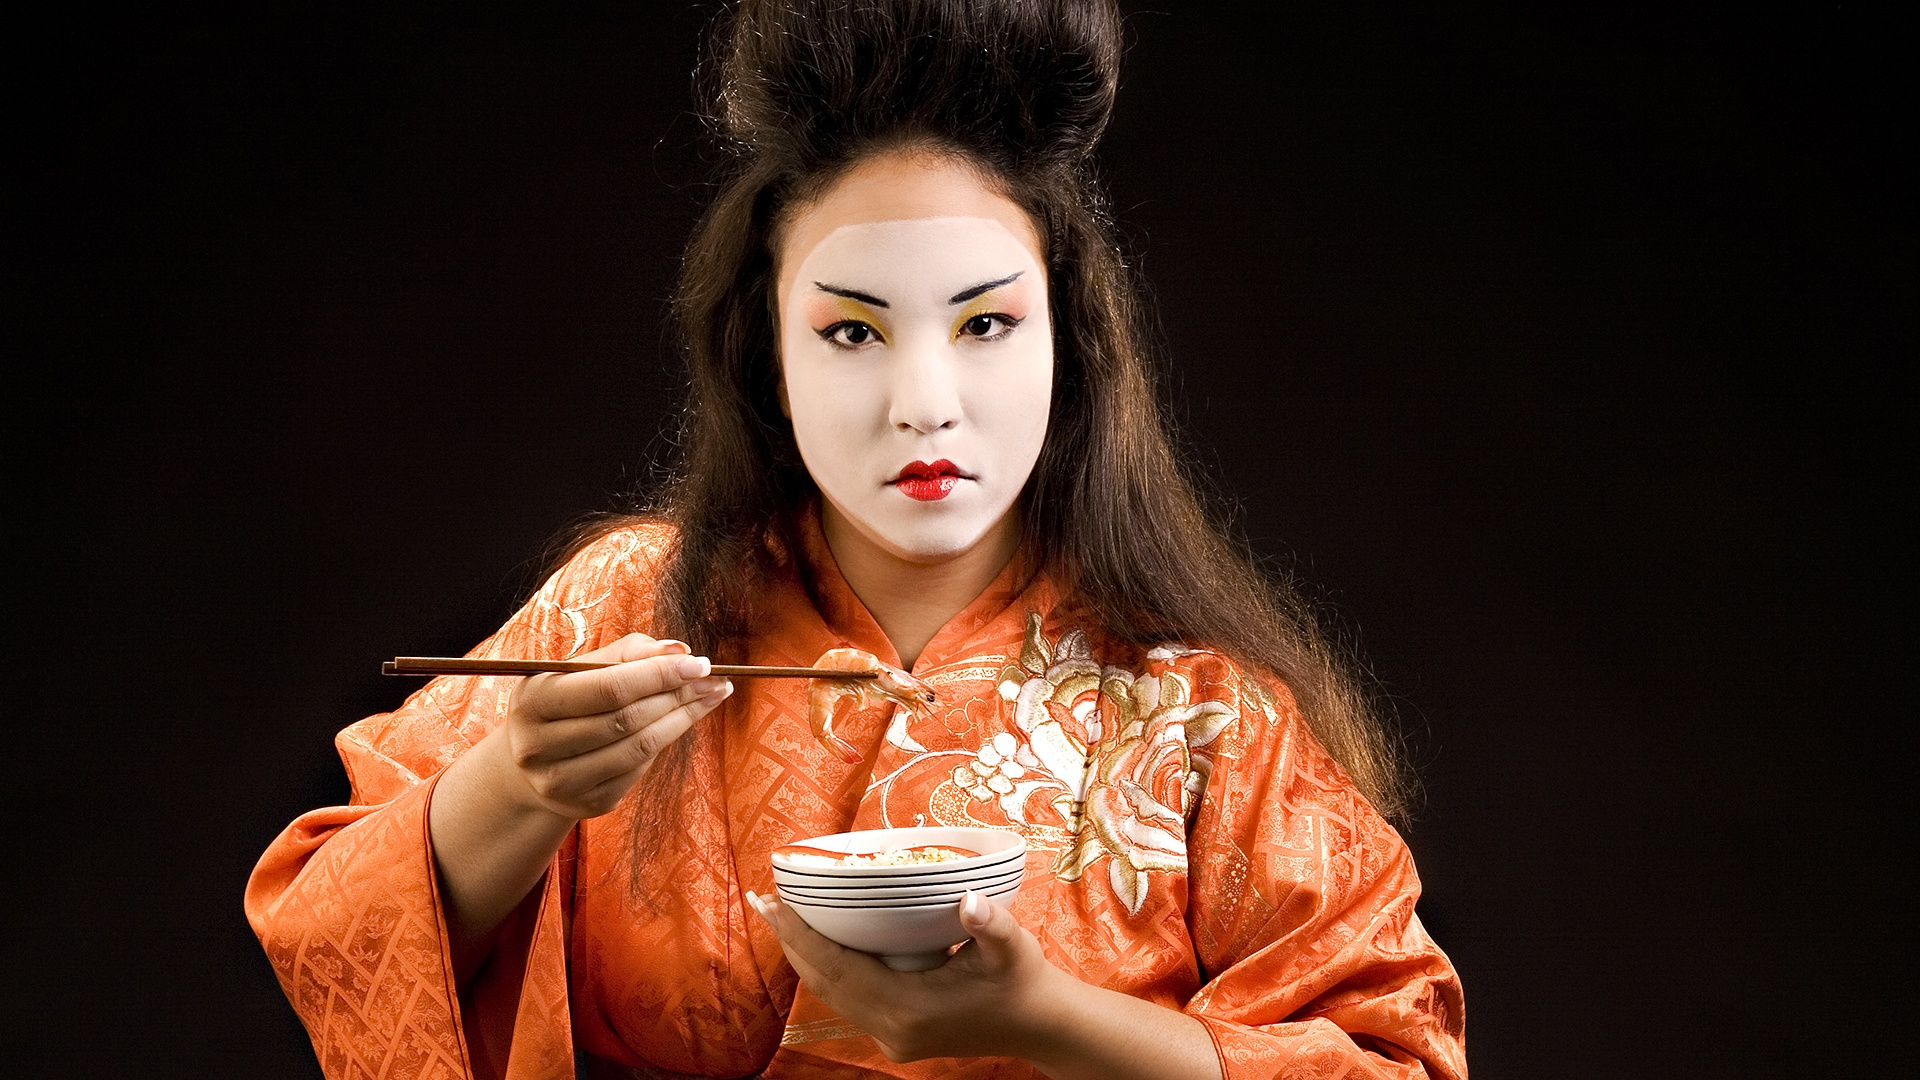 Geisha asian black brunette food geisha girl model woman 1920x1080